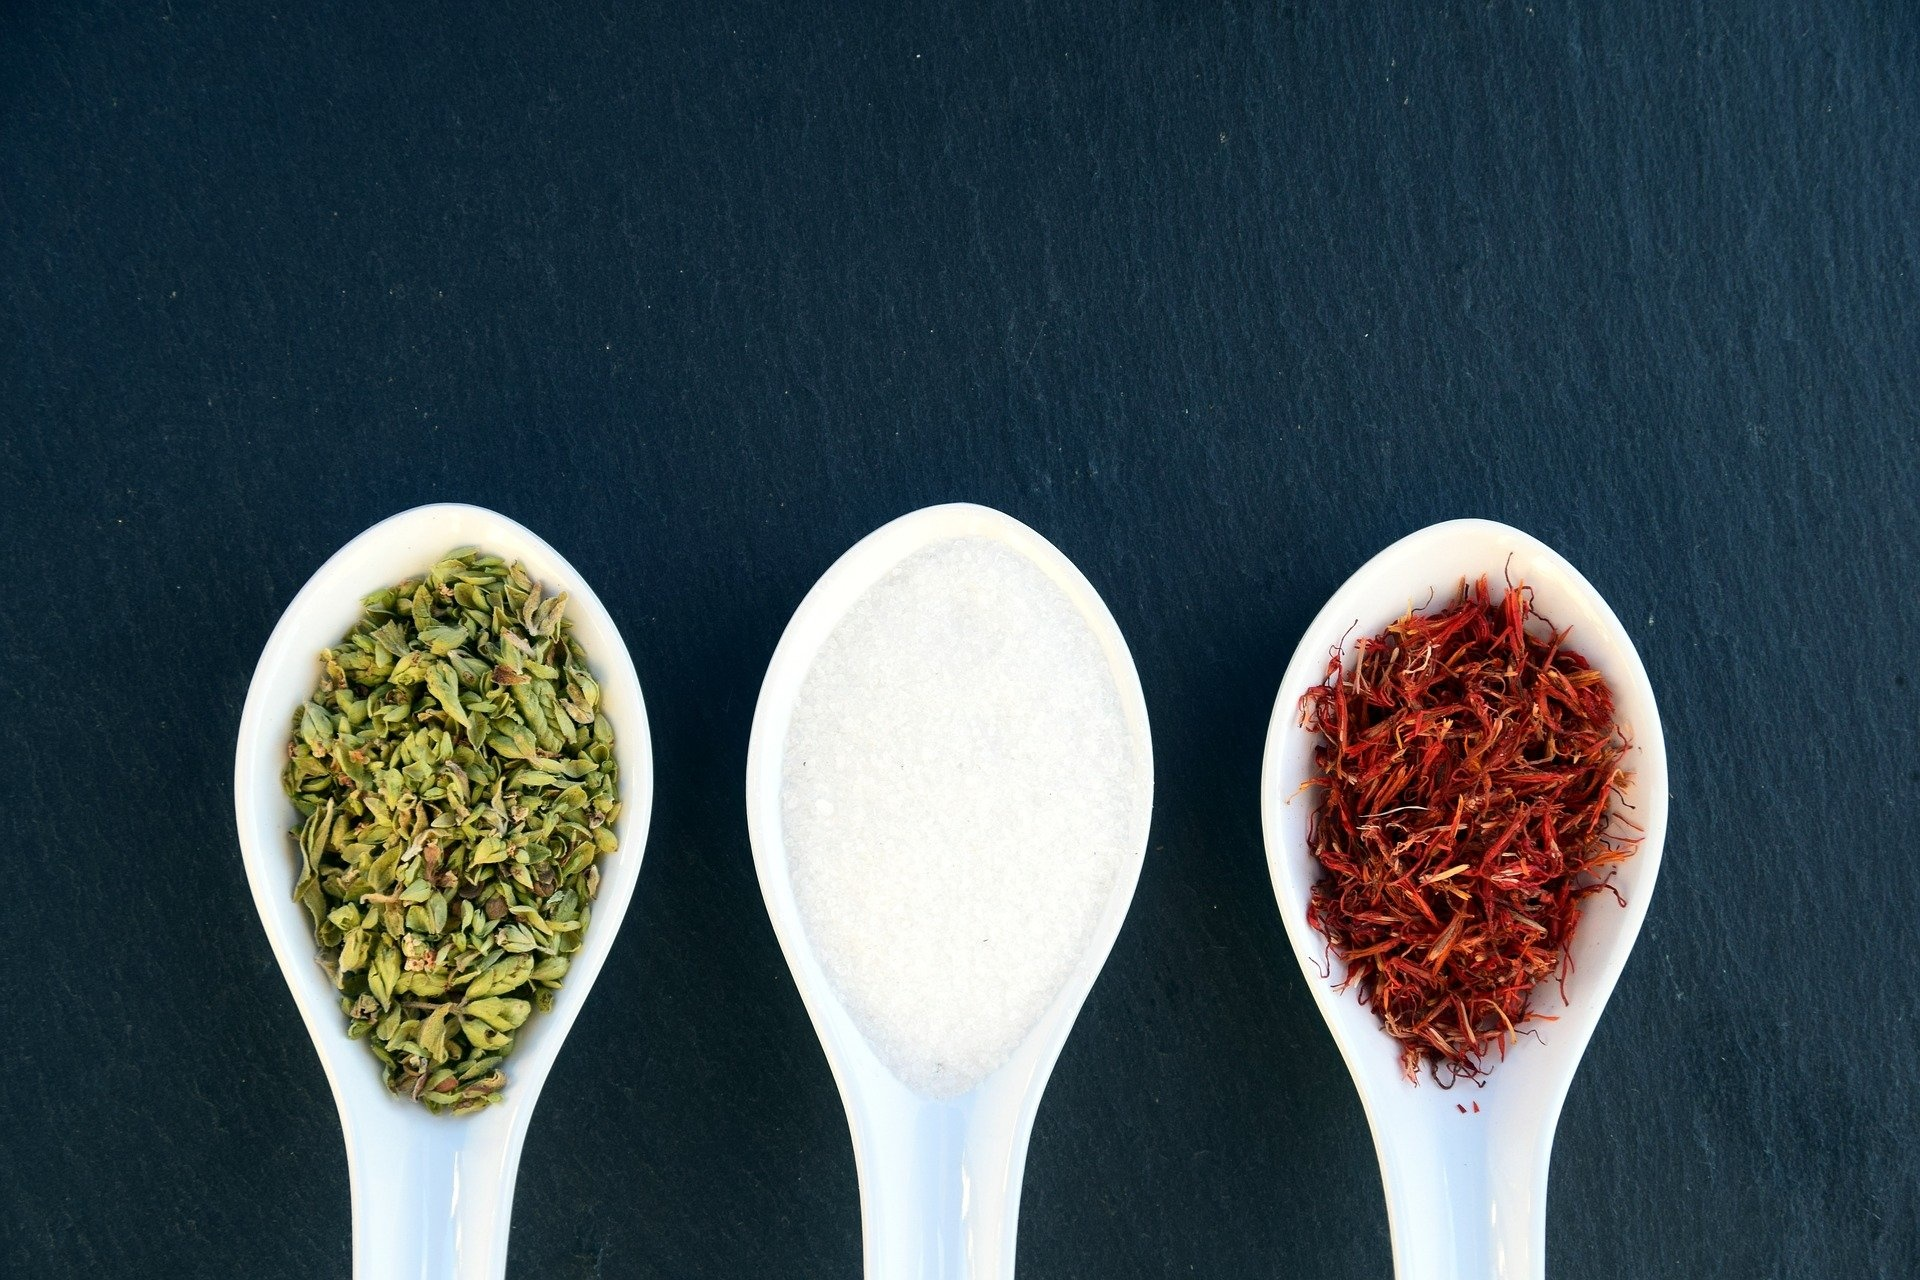 Herbs, Spices and salt